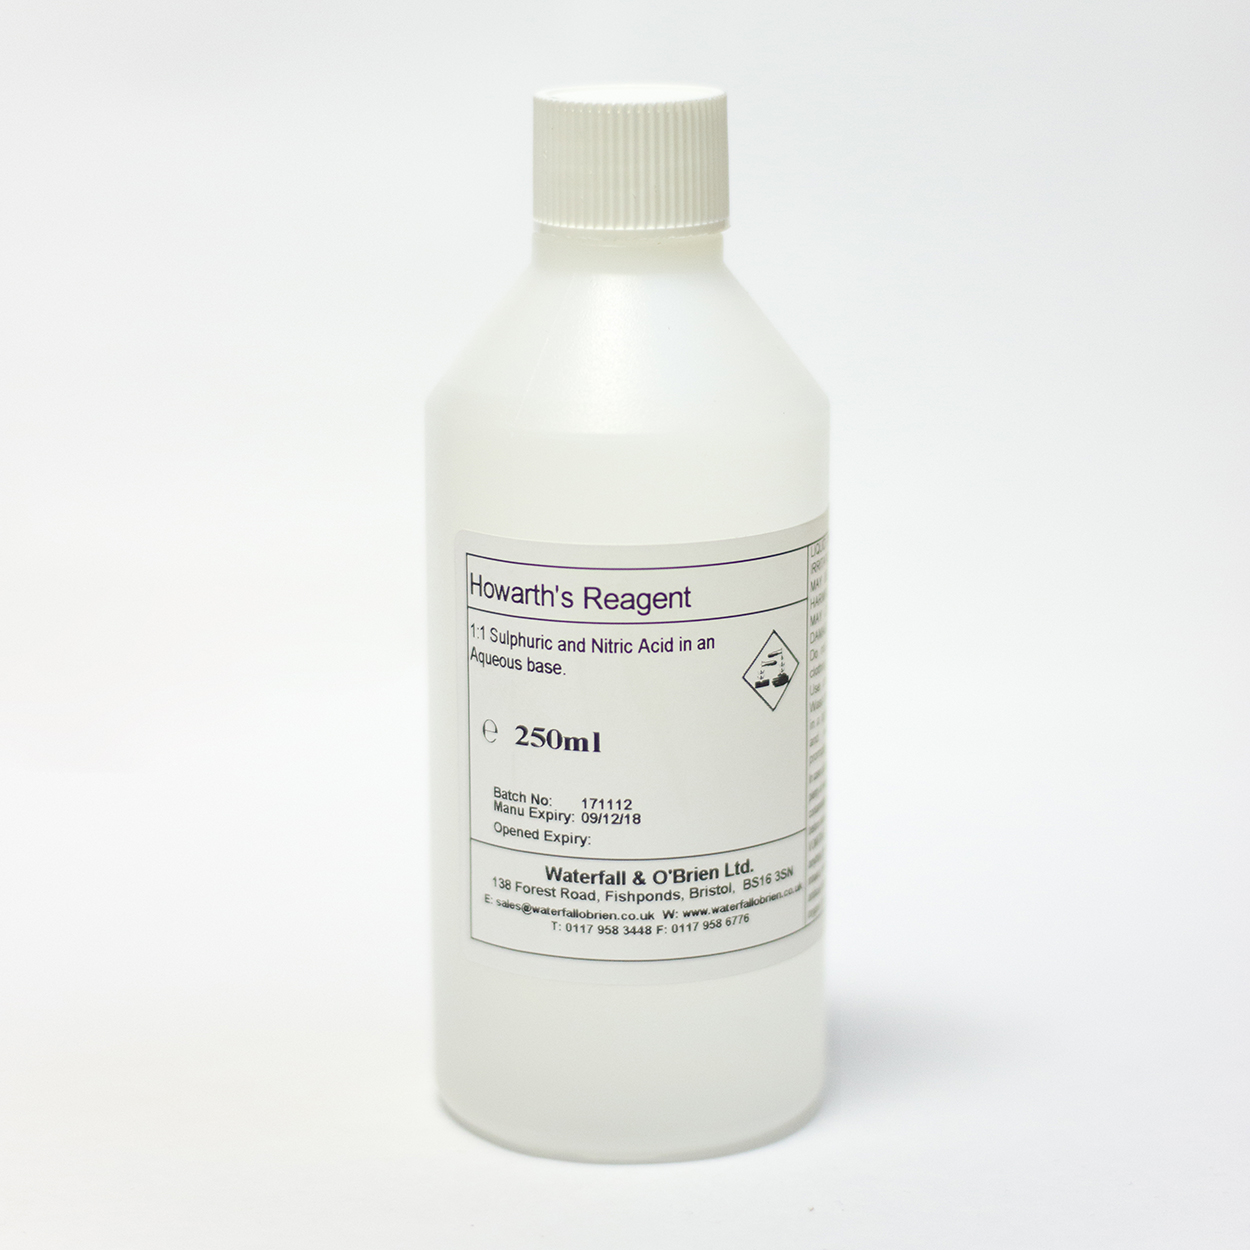 Howarth's Reagent